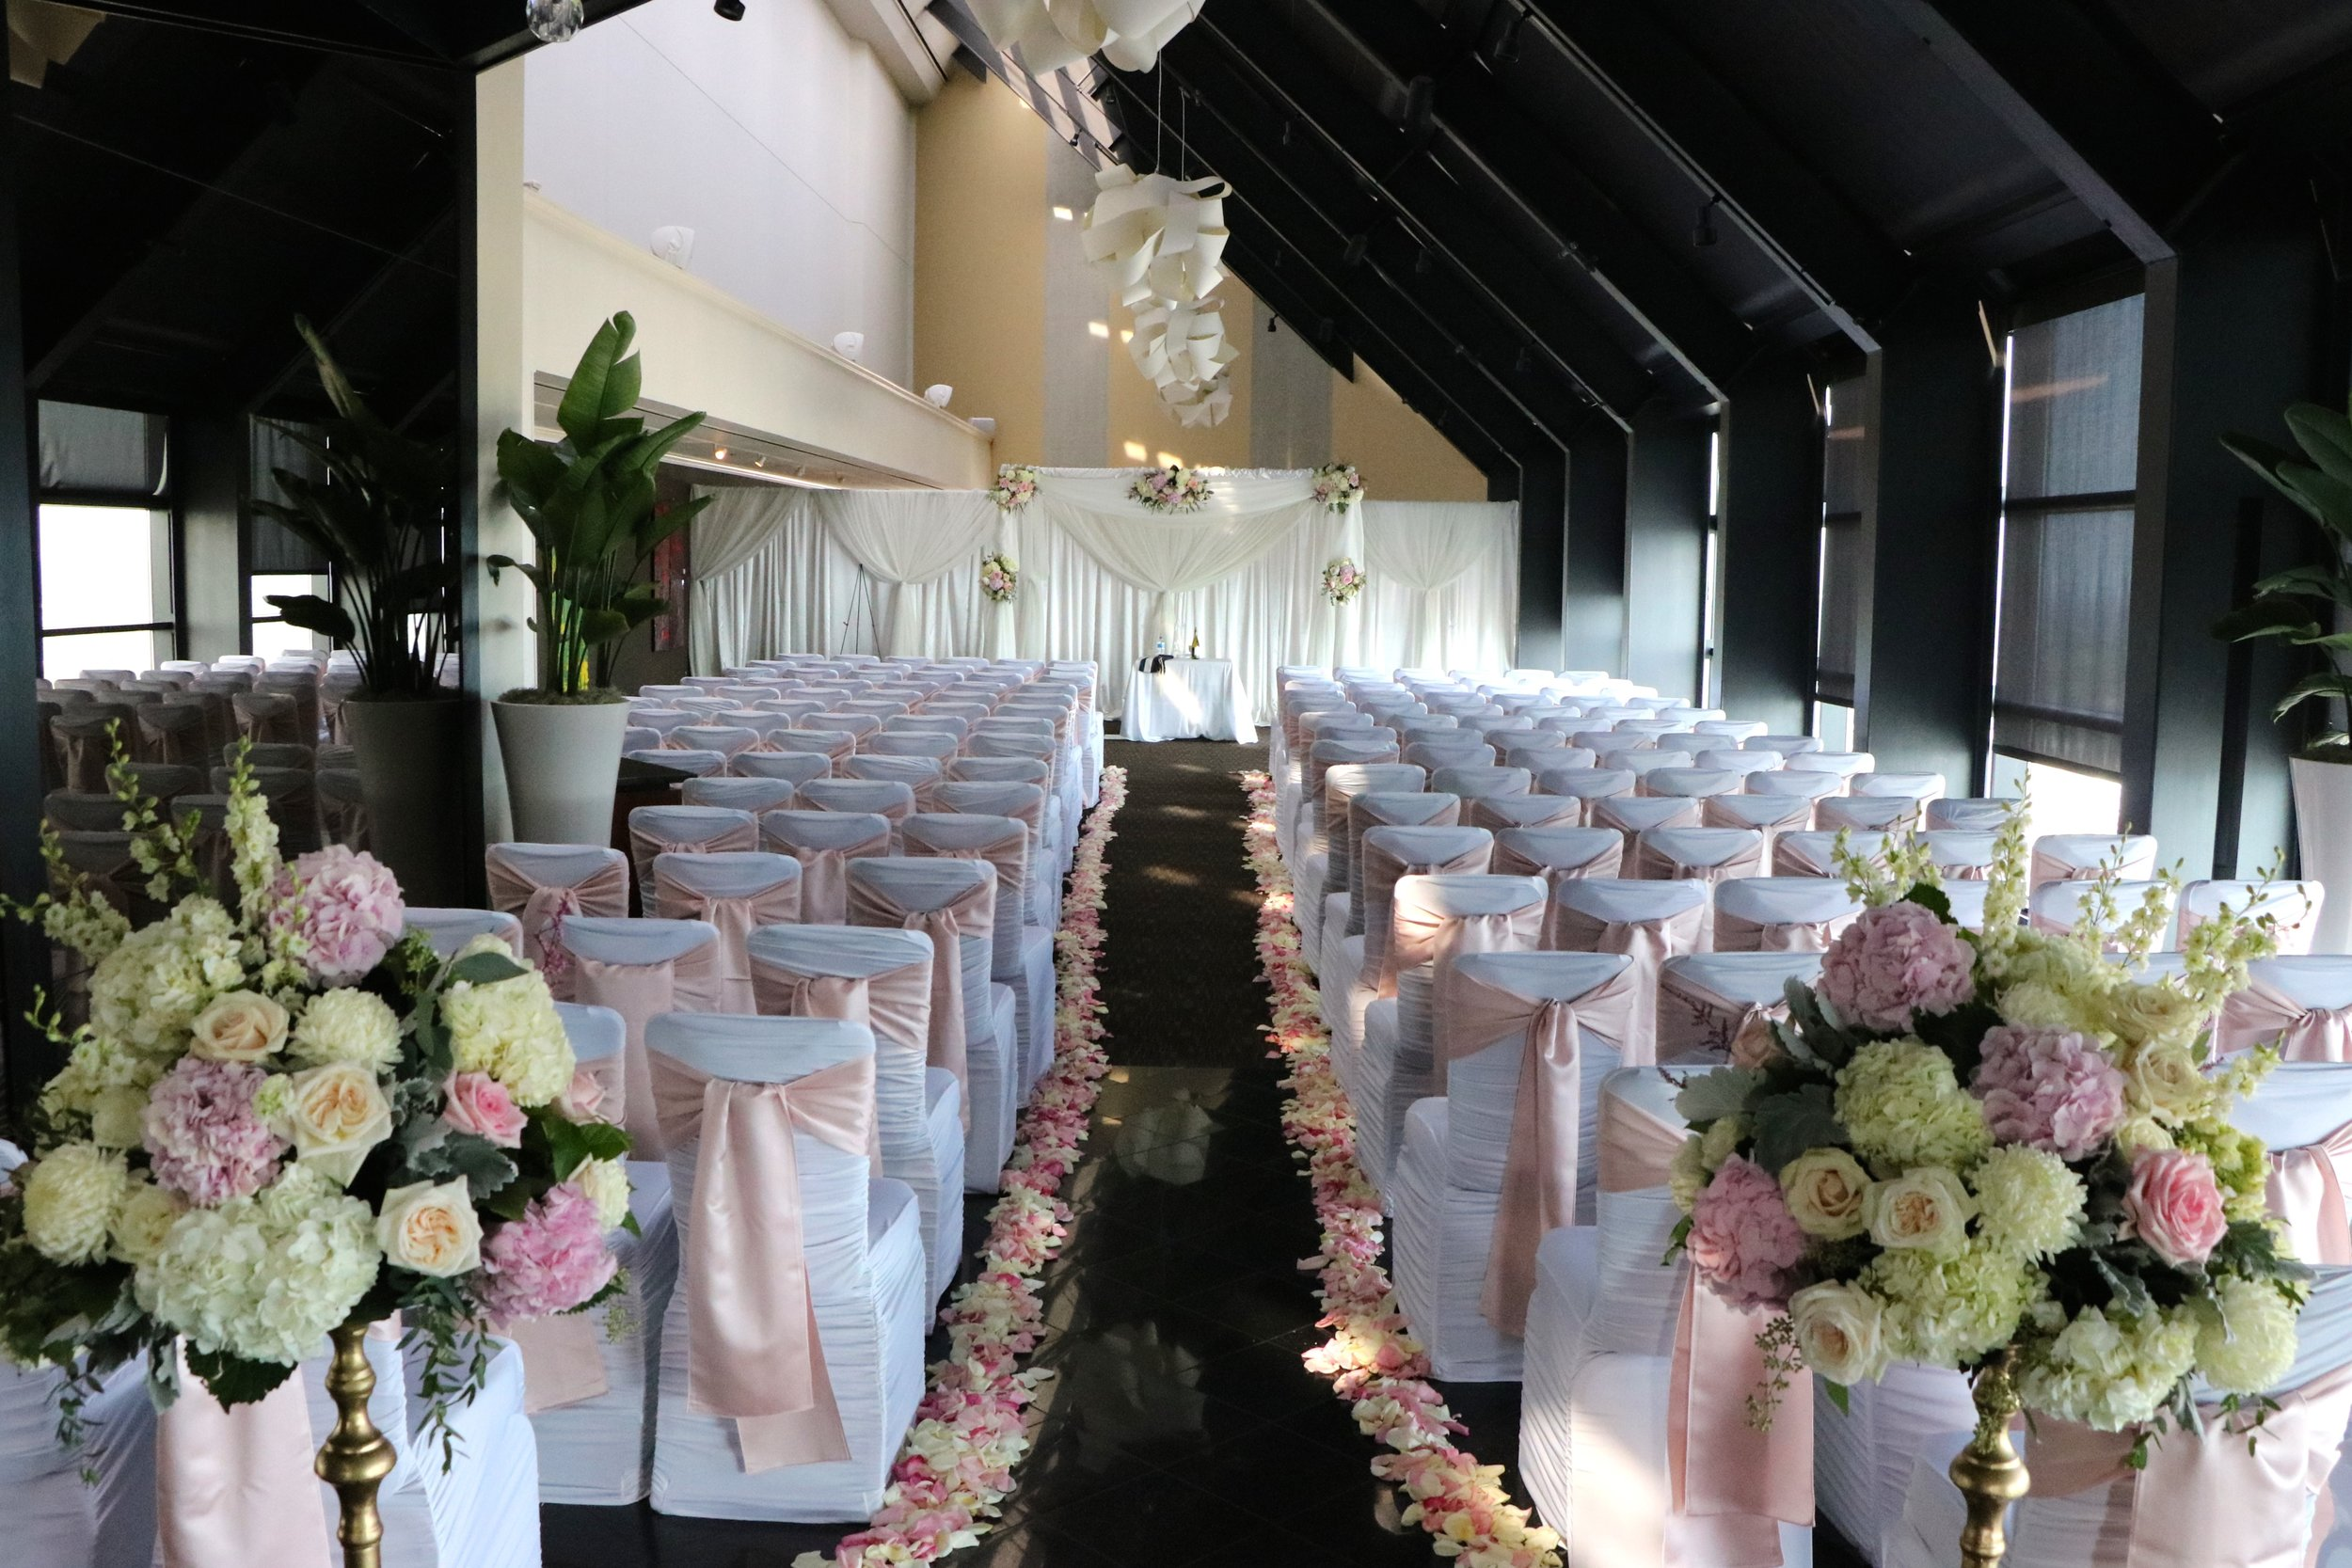 Beautiful flowers and petals lead to their chuppah